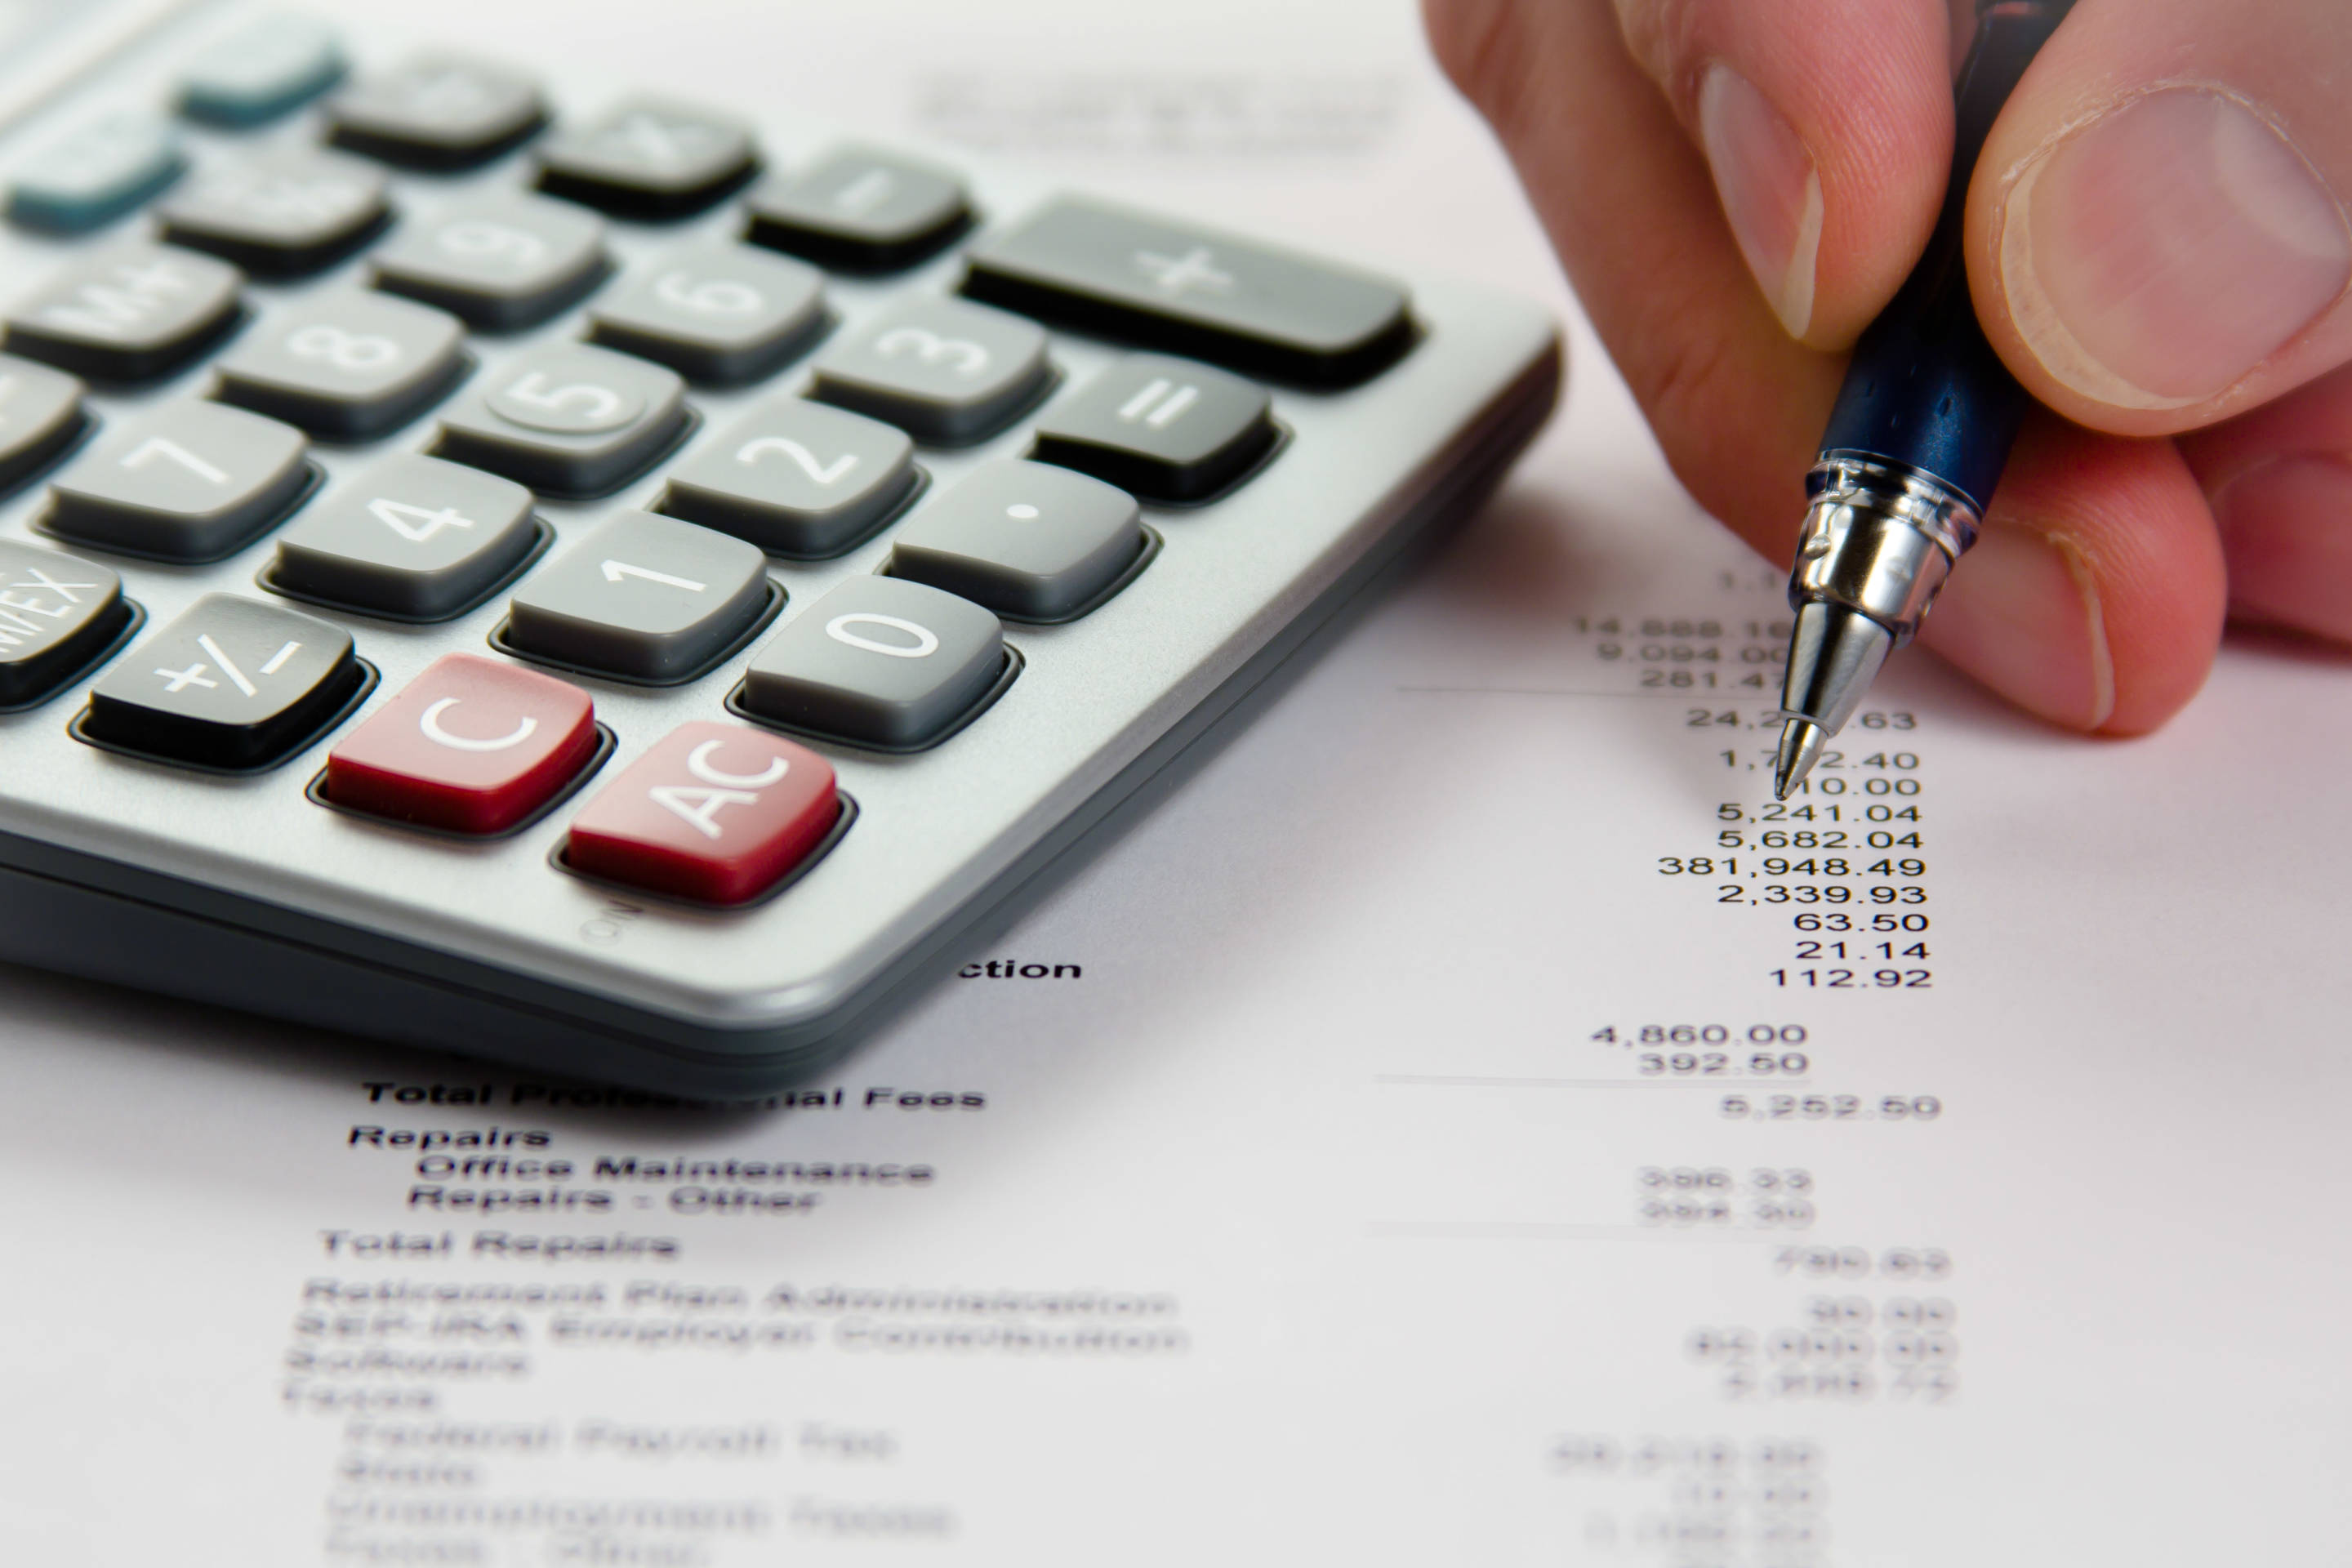 using accounting in personal life Intuit has two flagship accounting programs: quicken for personal finances and quickbooks for businesses while quickbooks is intended to be a business accounting software, it.